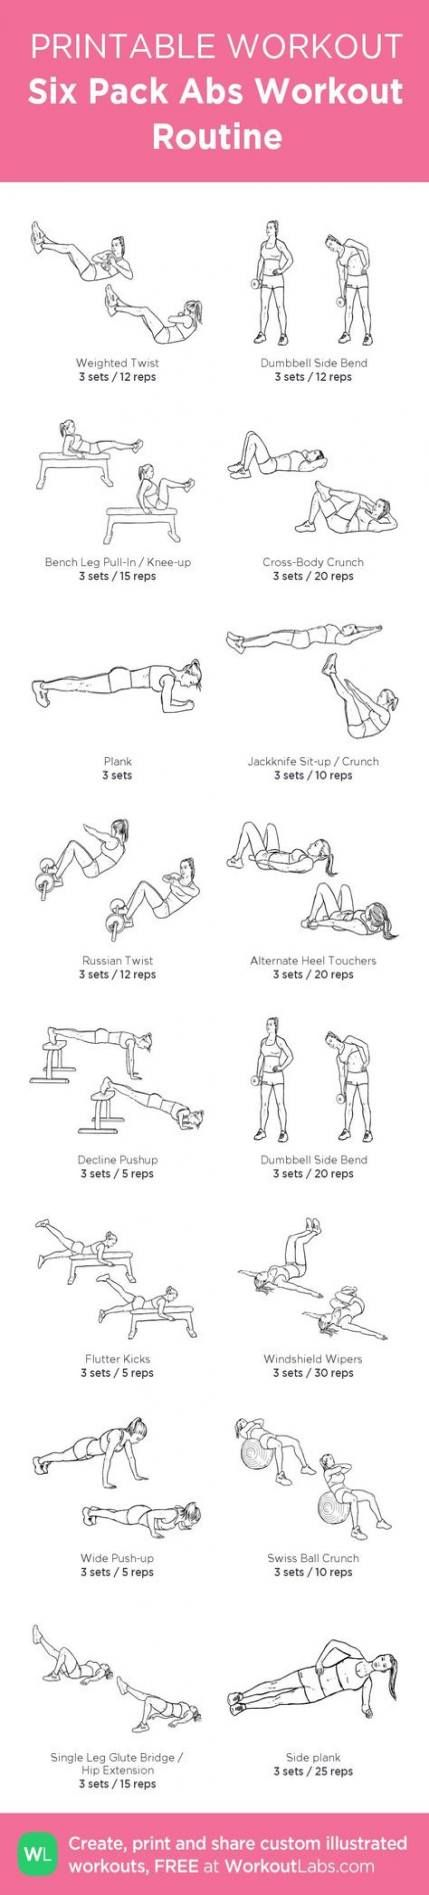 Super fitness routine workout plans healthy ideas #fitness